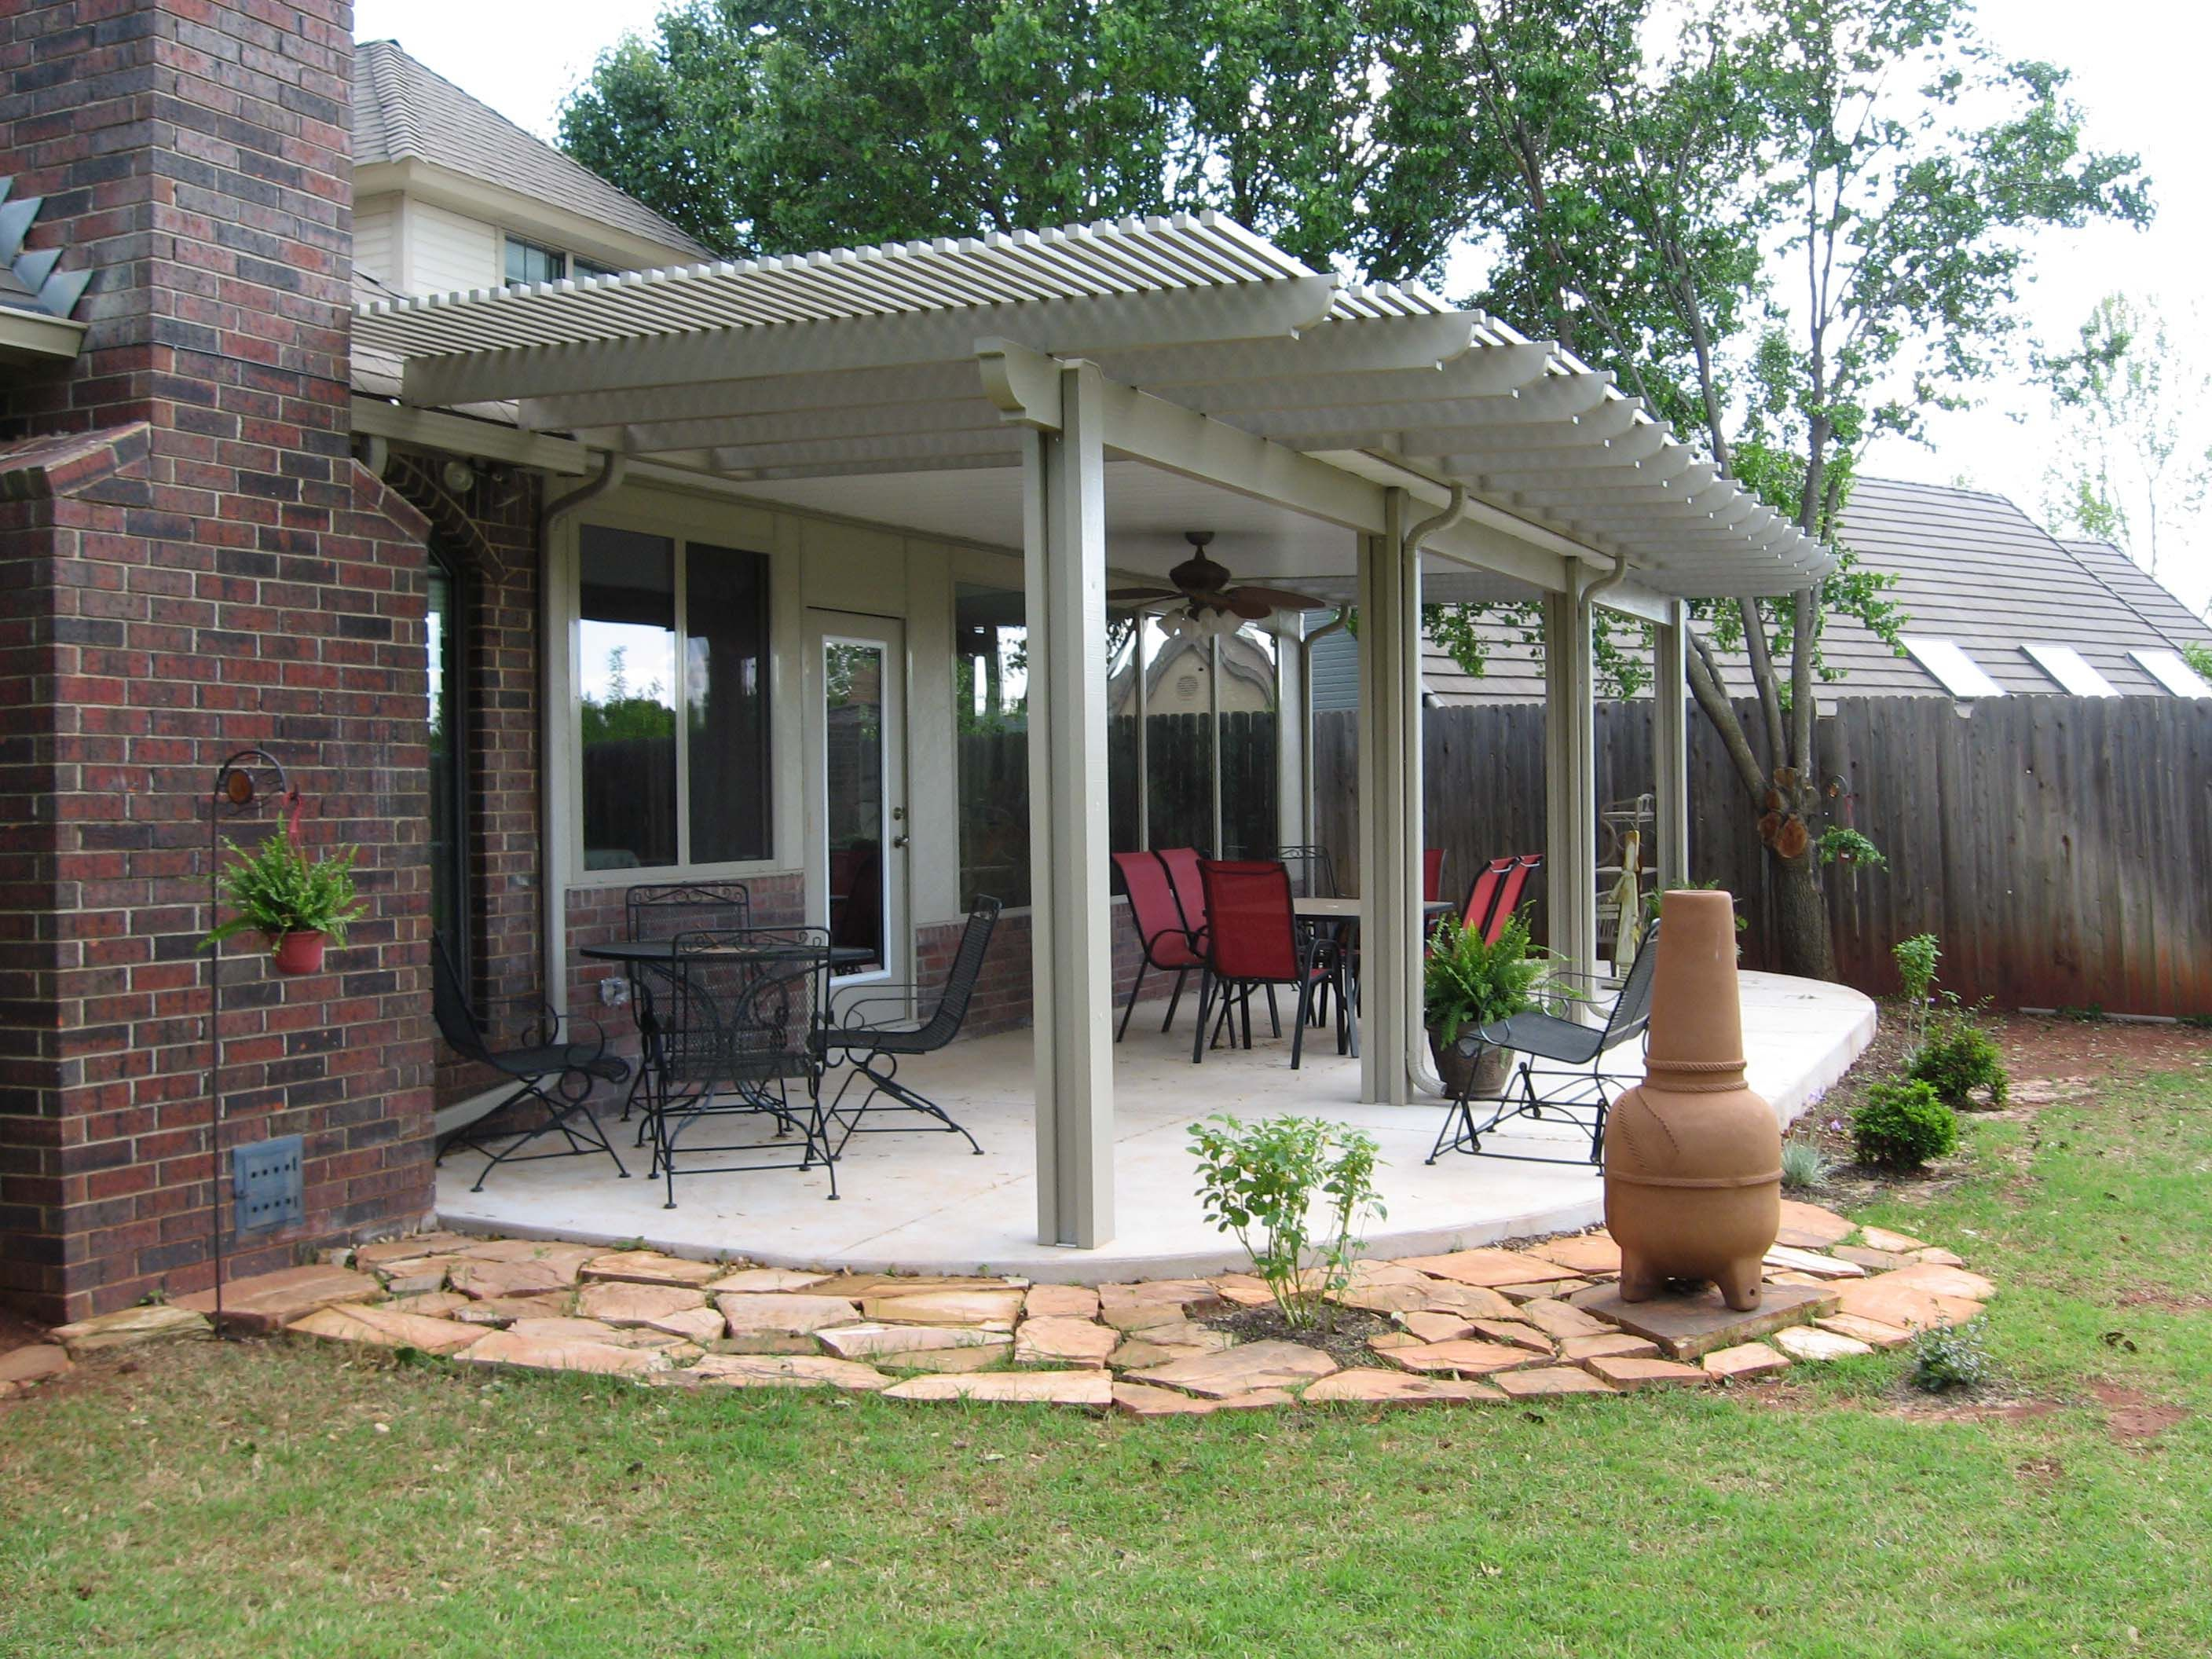 Arbor Designs Ideas backyard arbors ideas pergola garden_designrulz 18 pergola design ideas that you can try on your own Patio Arbor Design Patio Covers Amp Arborsthumbs